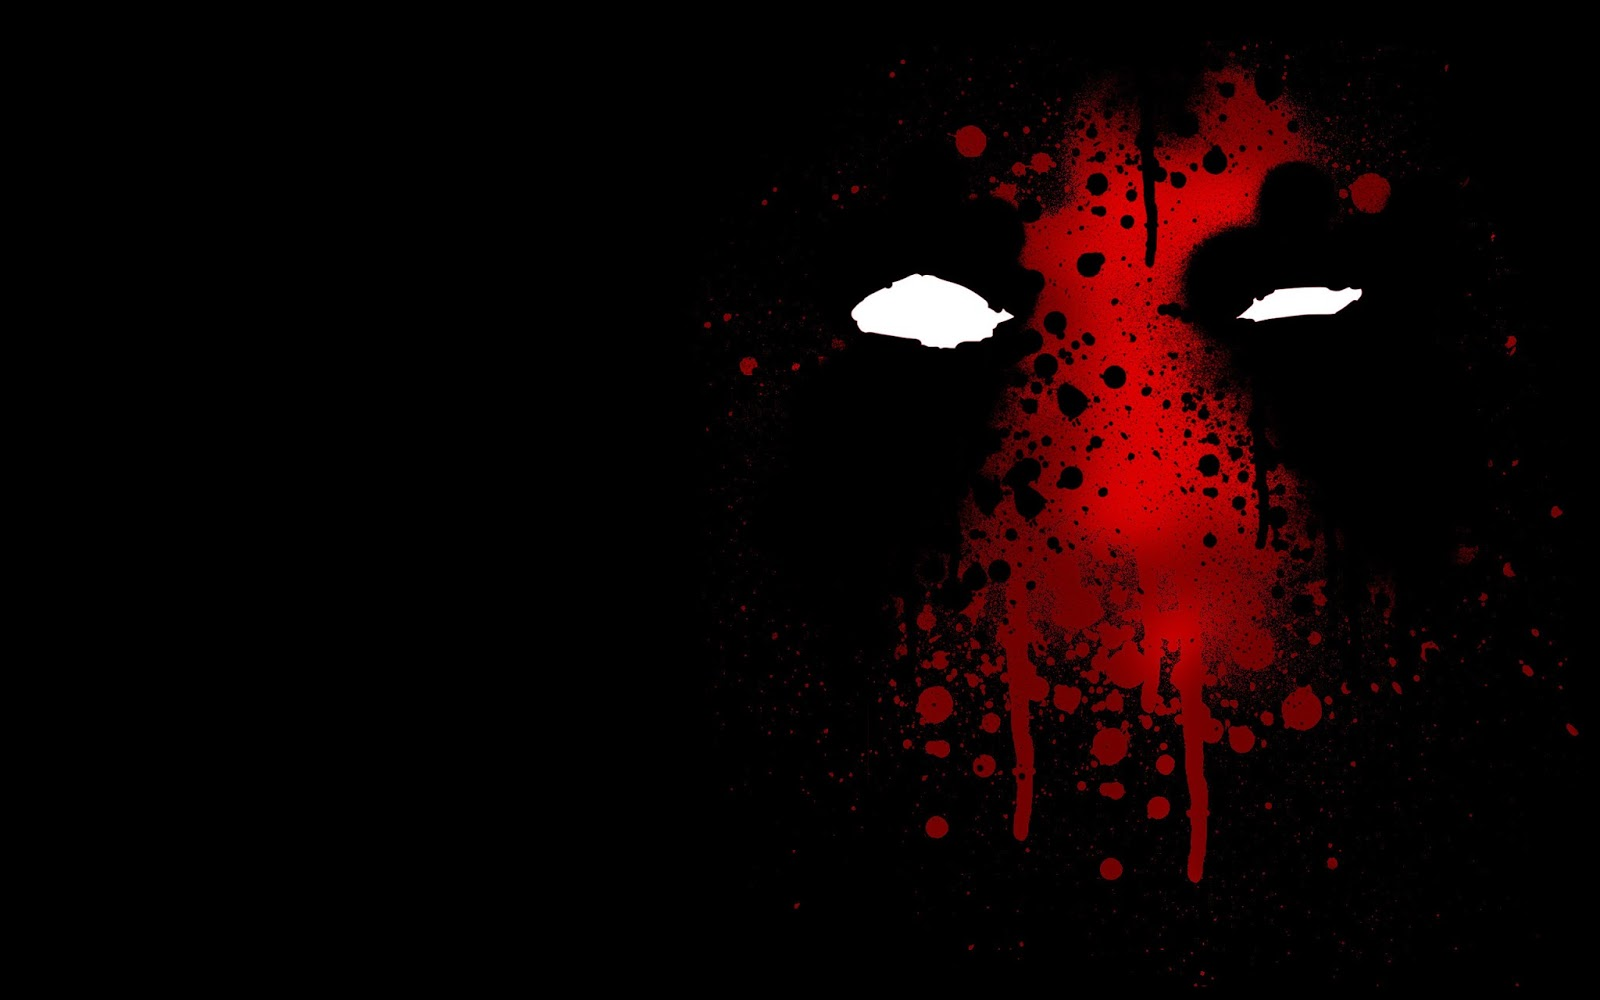 Superhero Black Dark Background HD Wallpaper Desktop PC Background 1600x1000